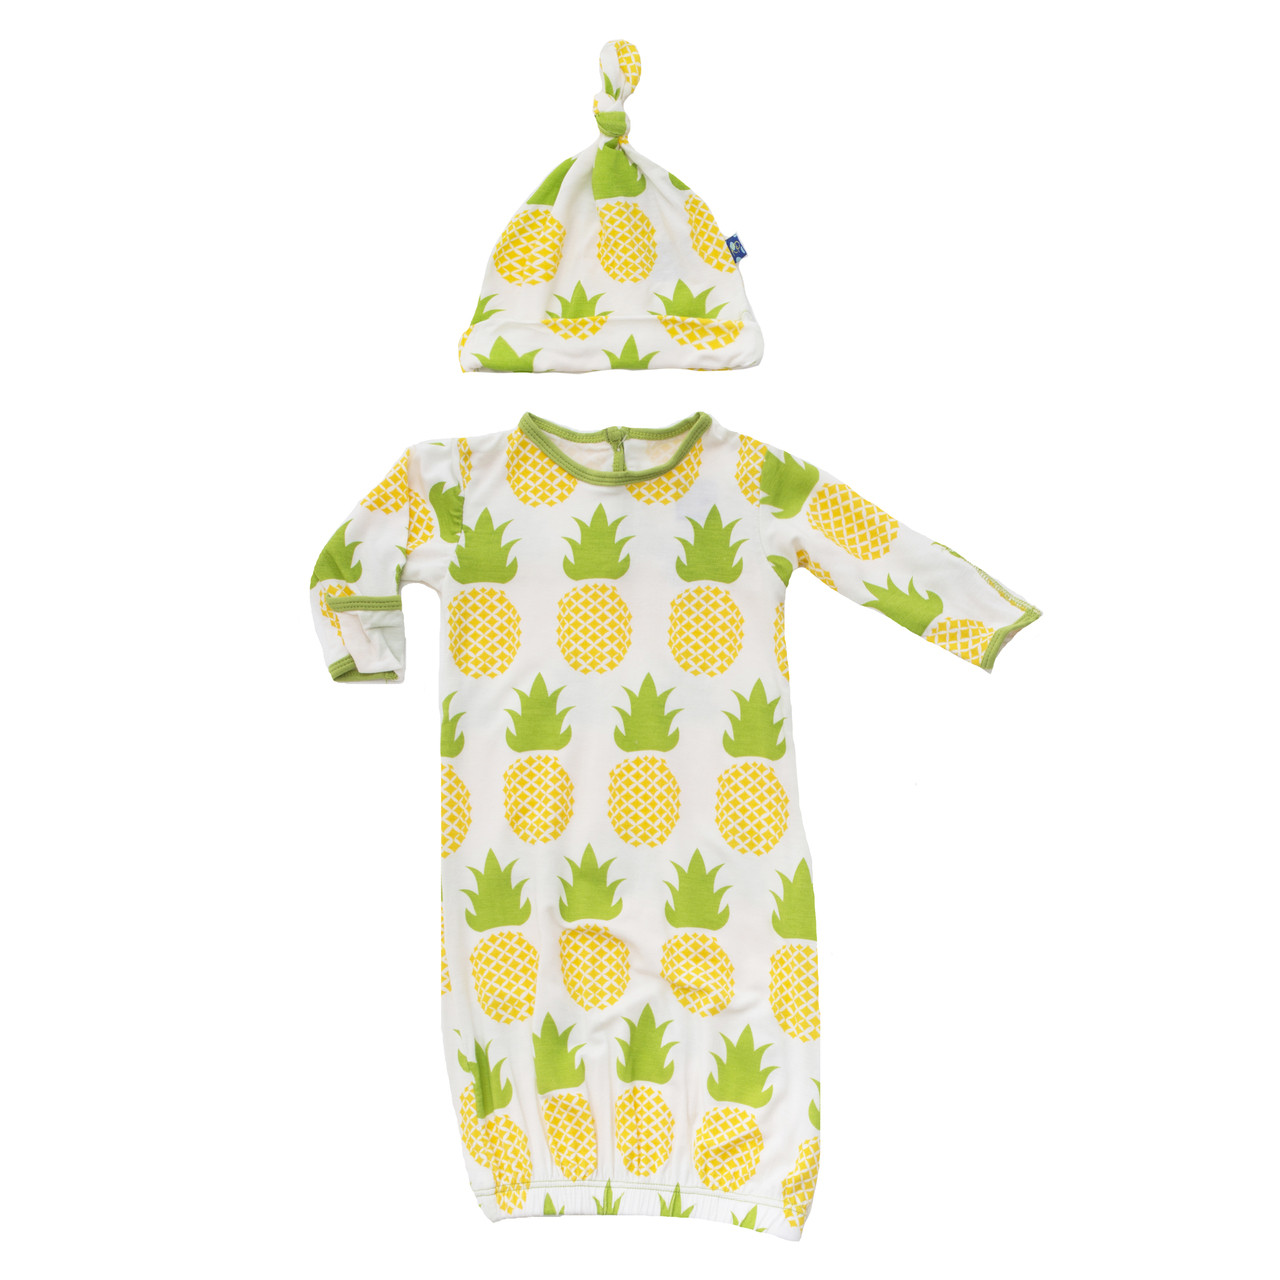 KicKee Pants Newborn Layette Gown & Hat Outfit Set-Neutral Baby ...